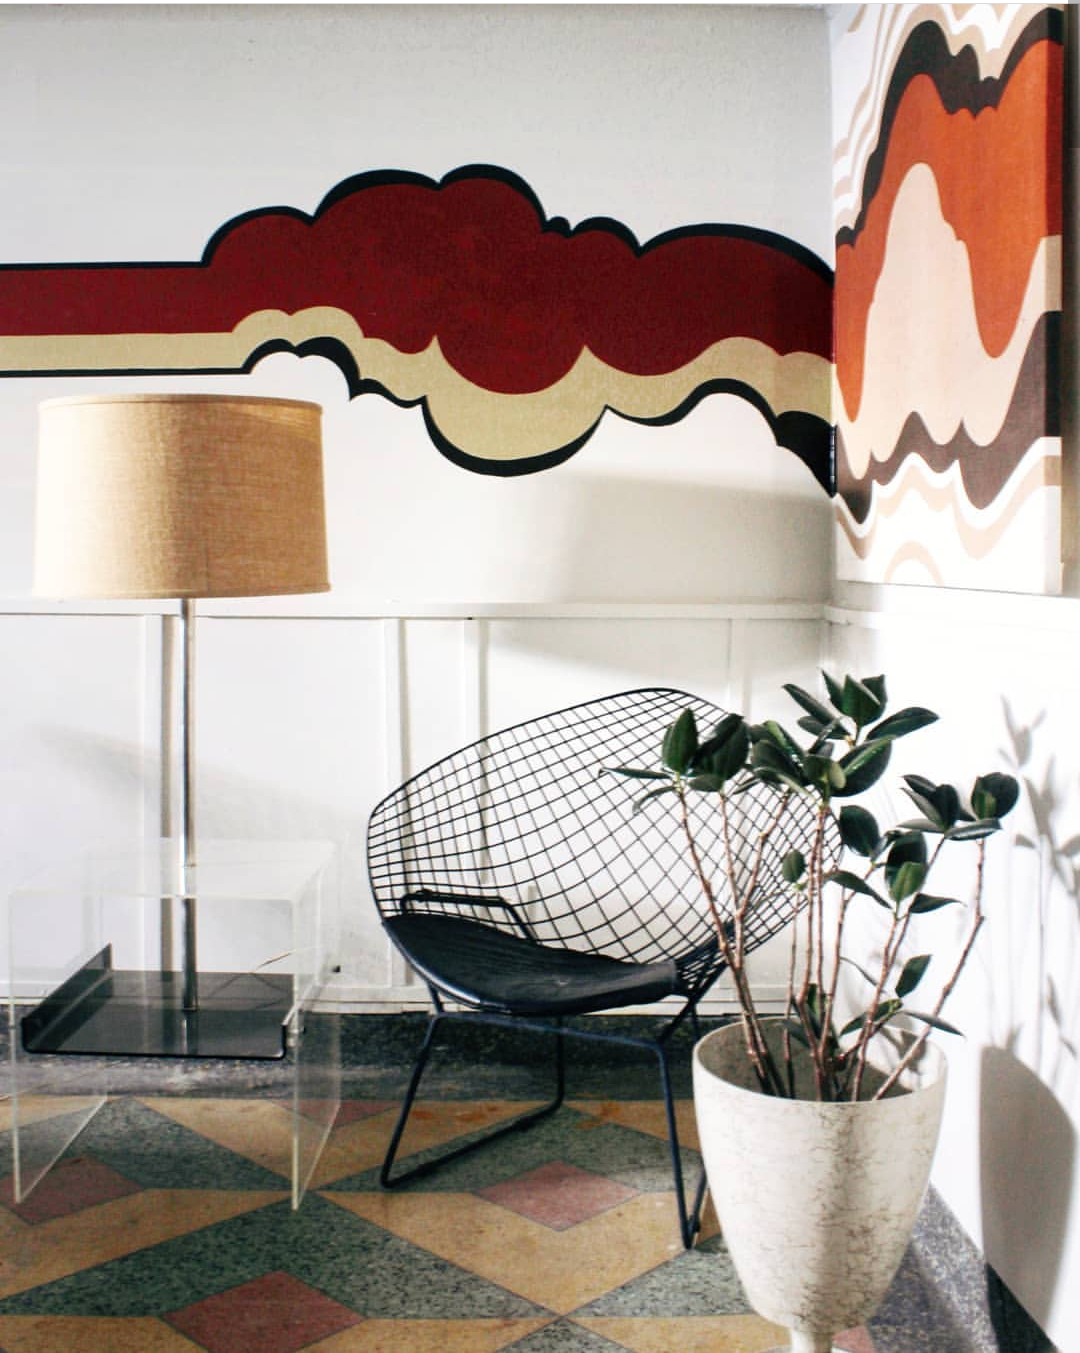 This wall painting was inspired by the art hanging to the right and extended on to the wall.